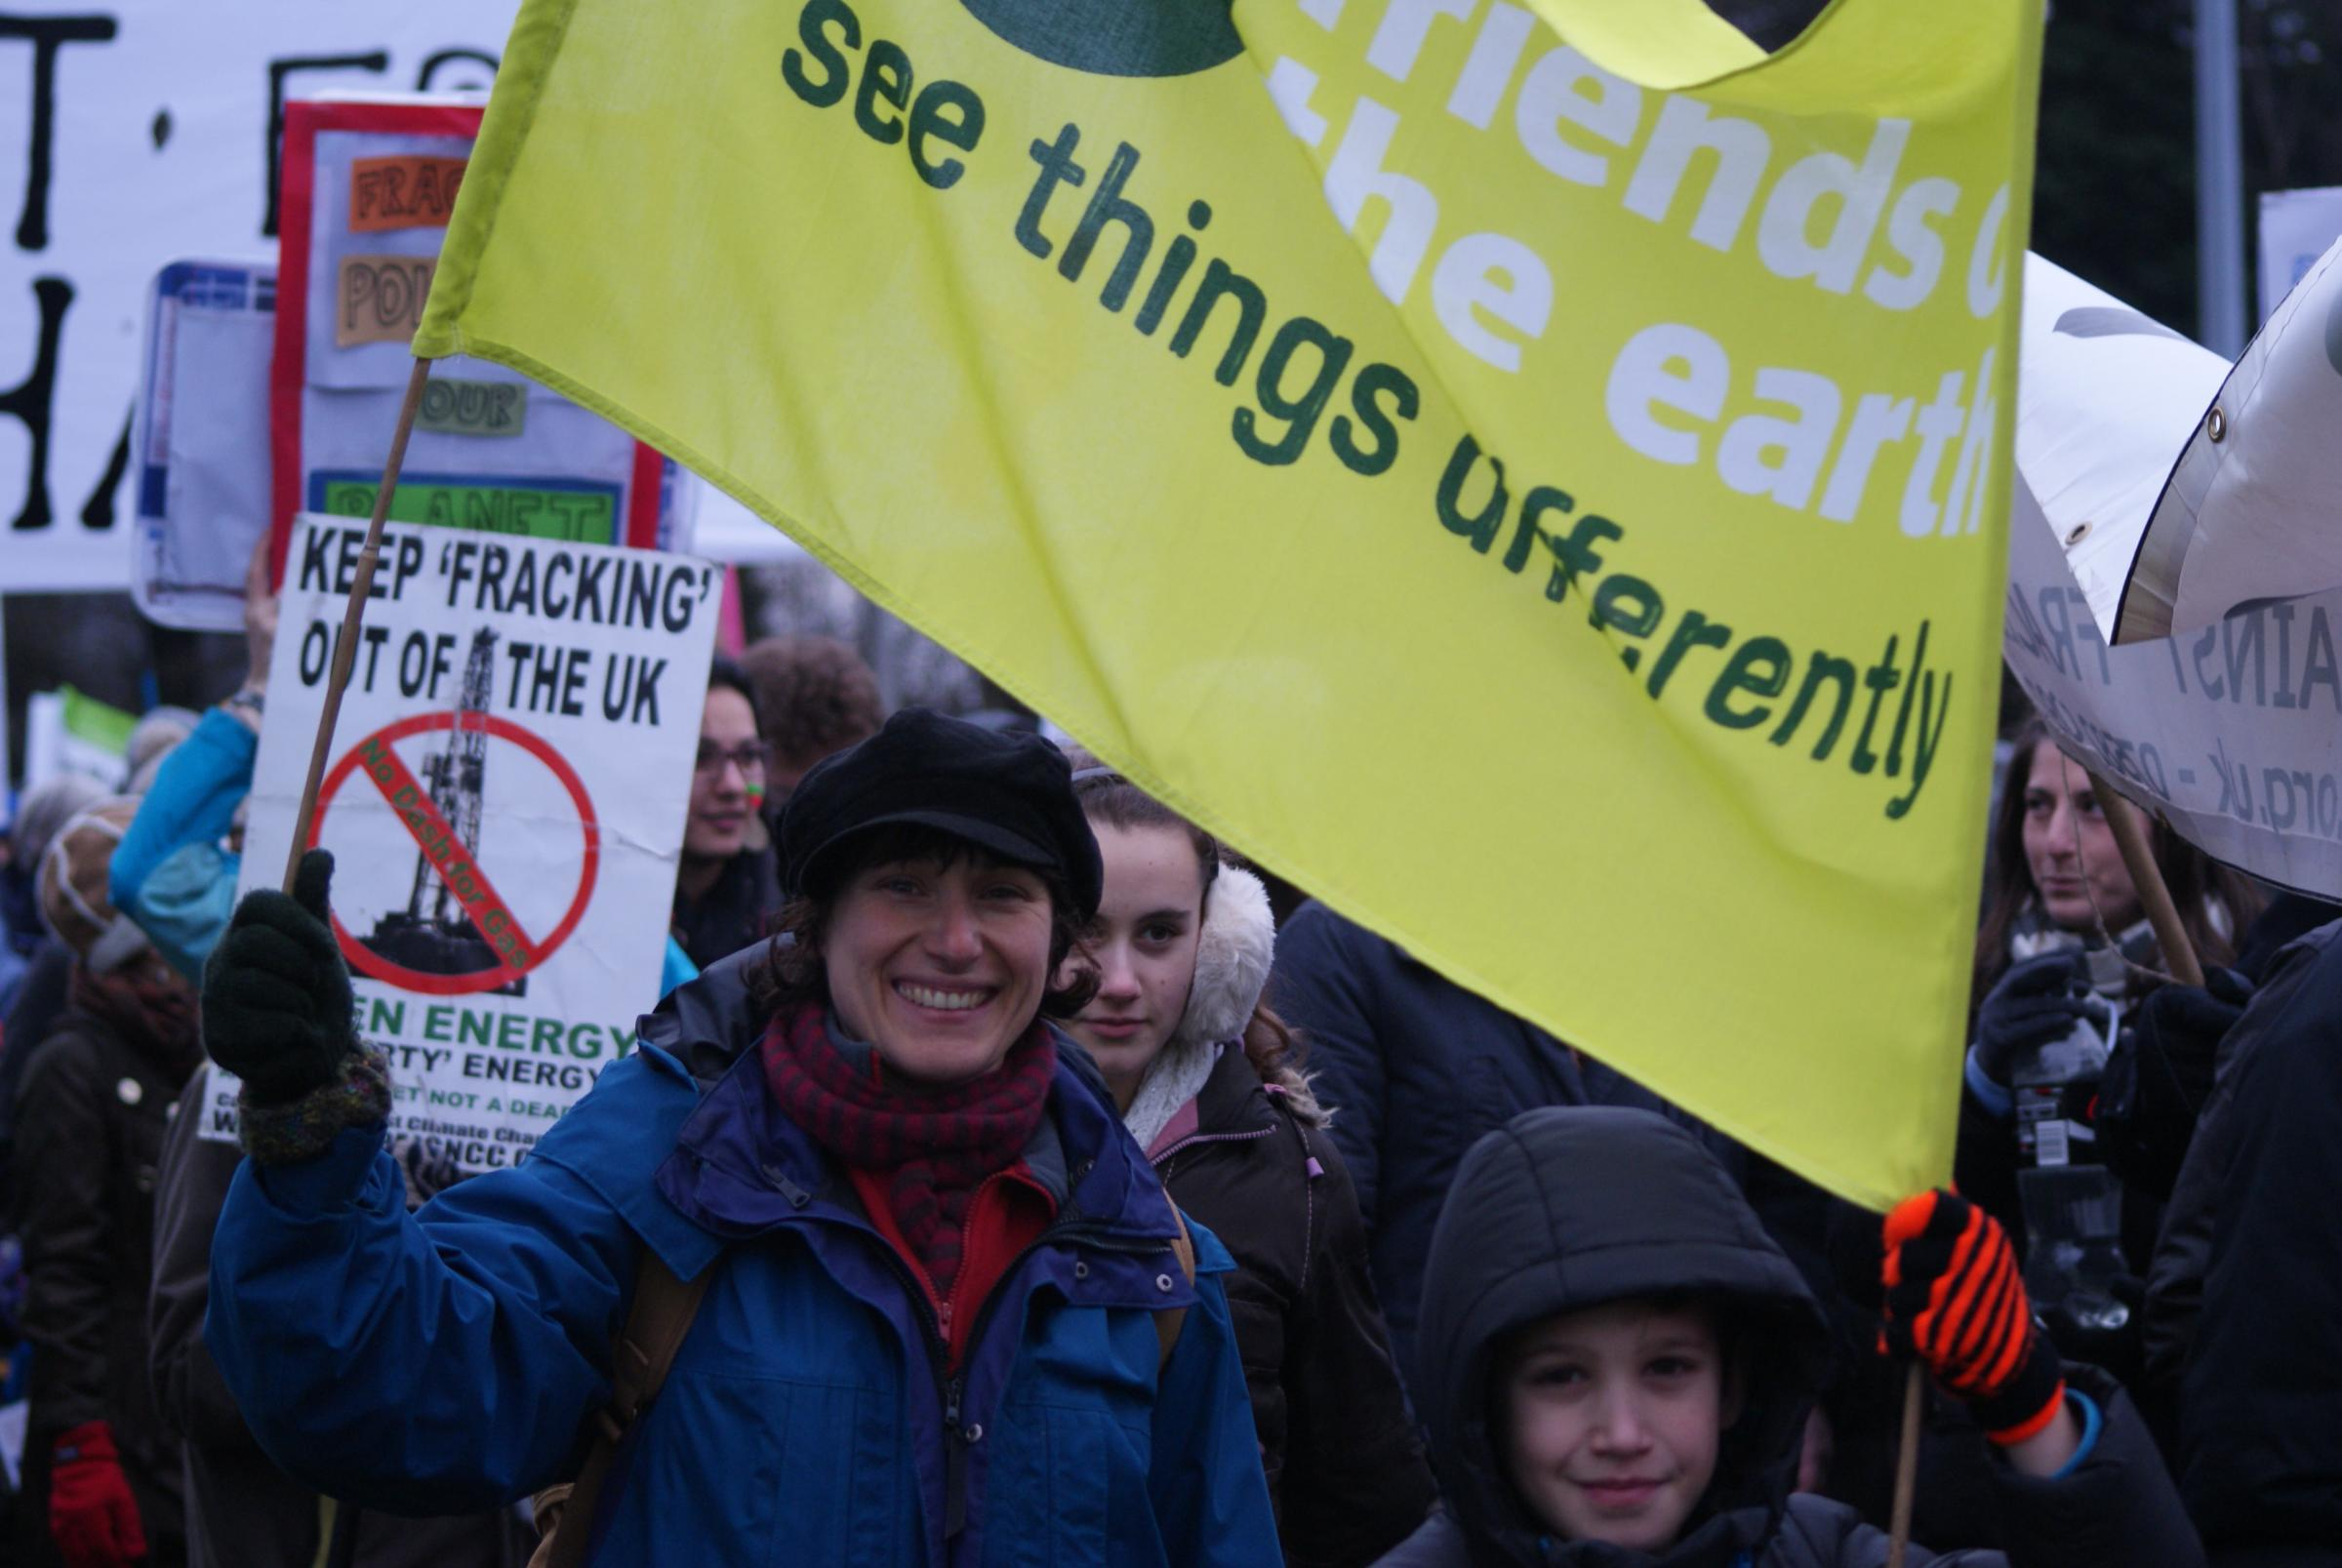 Why I took my family to fracking demonstration